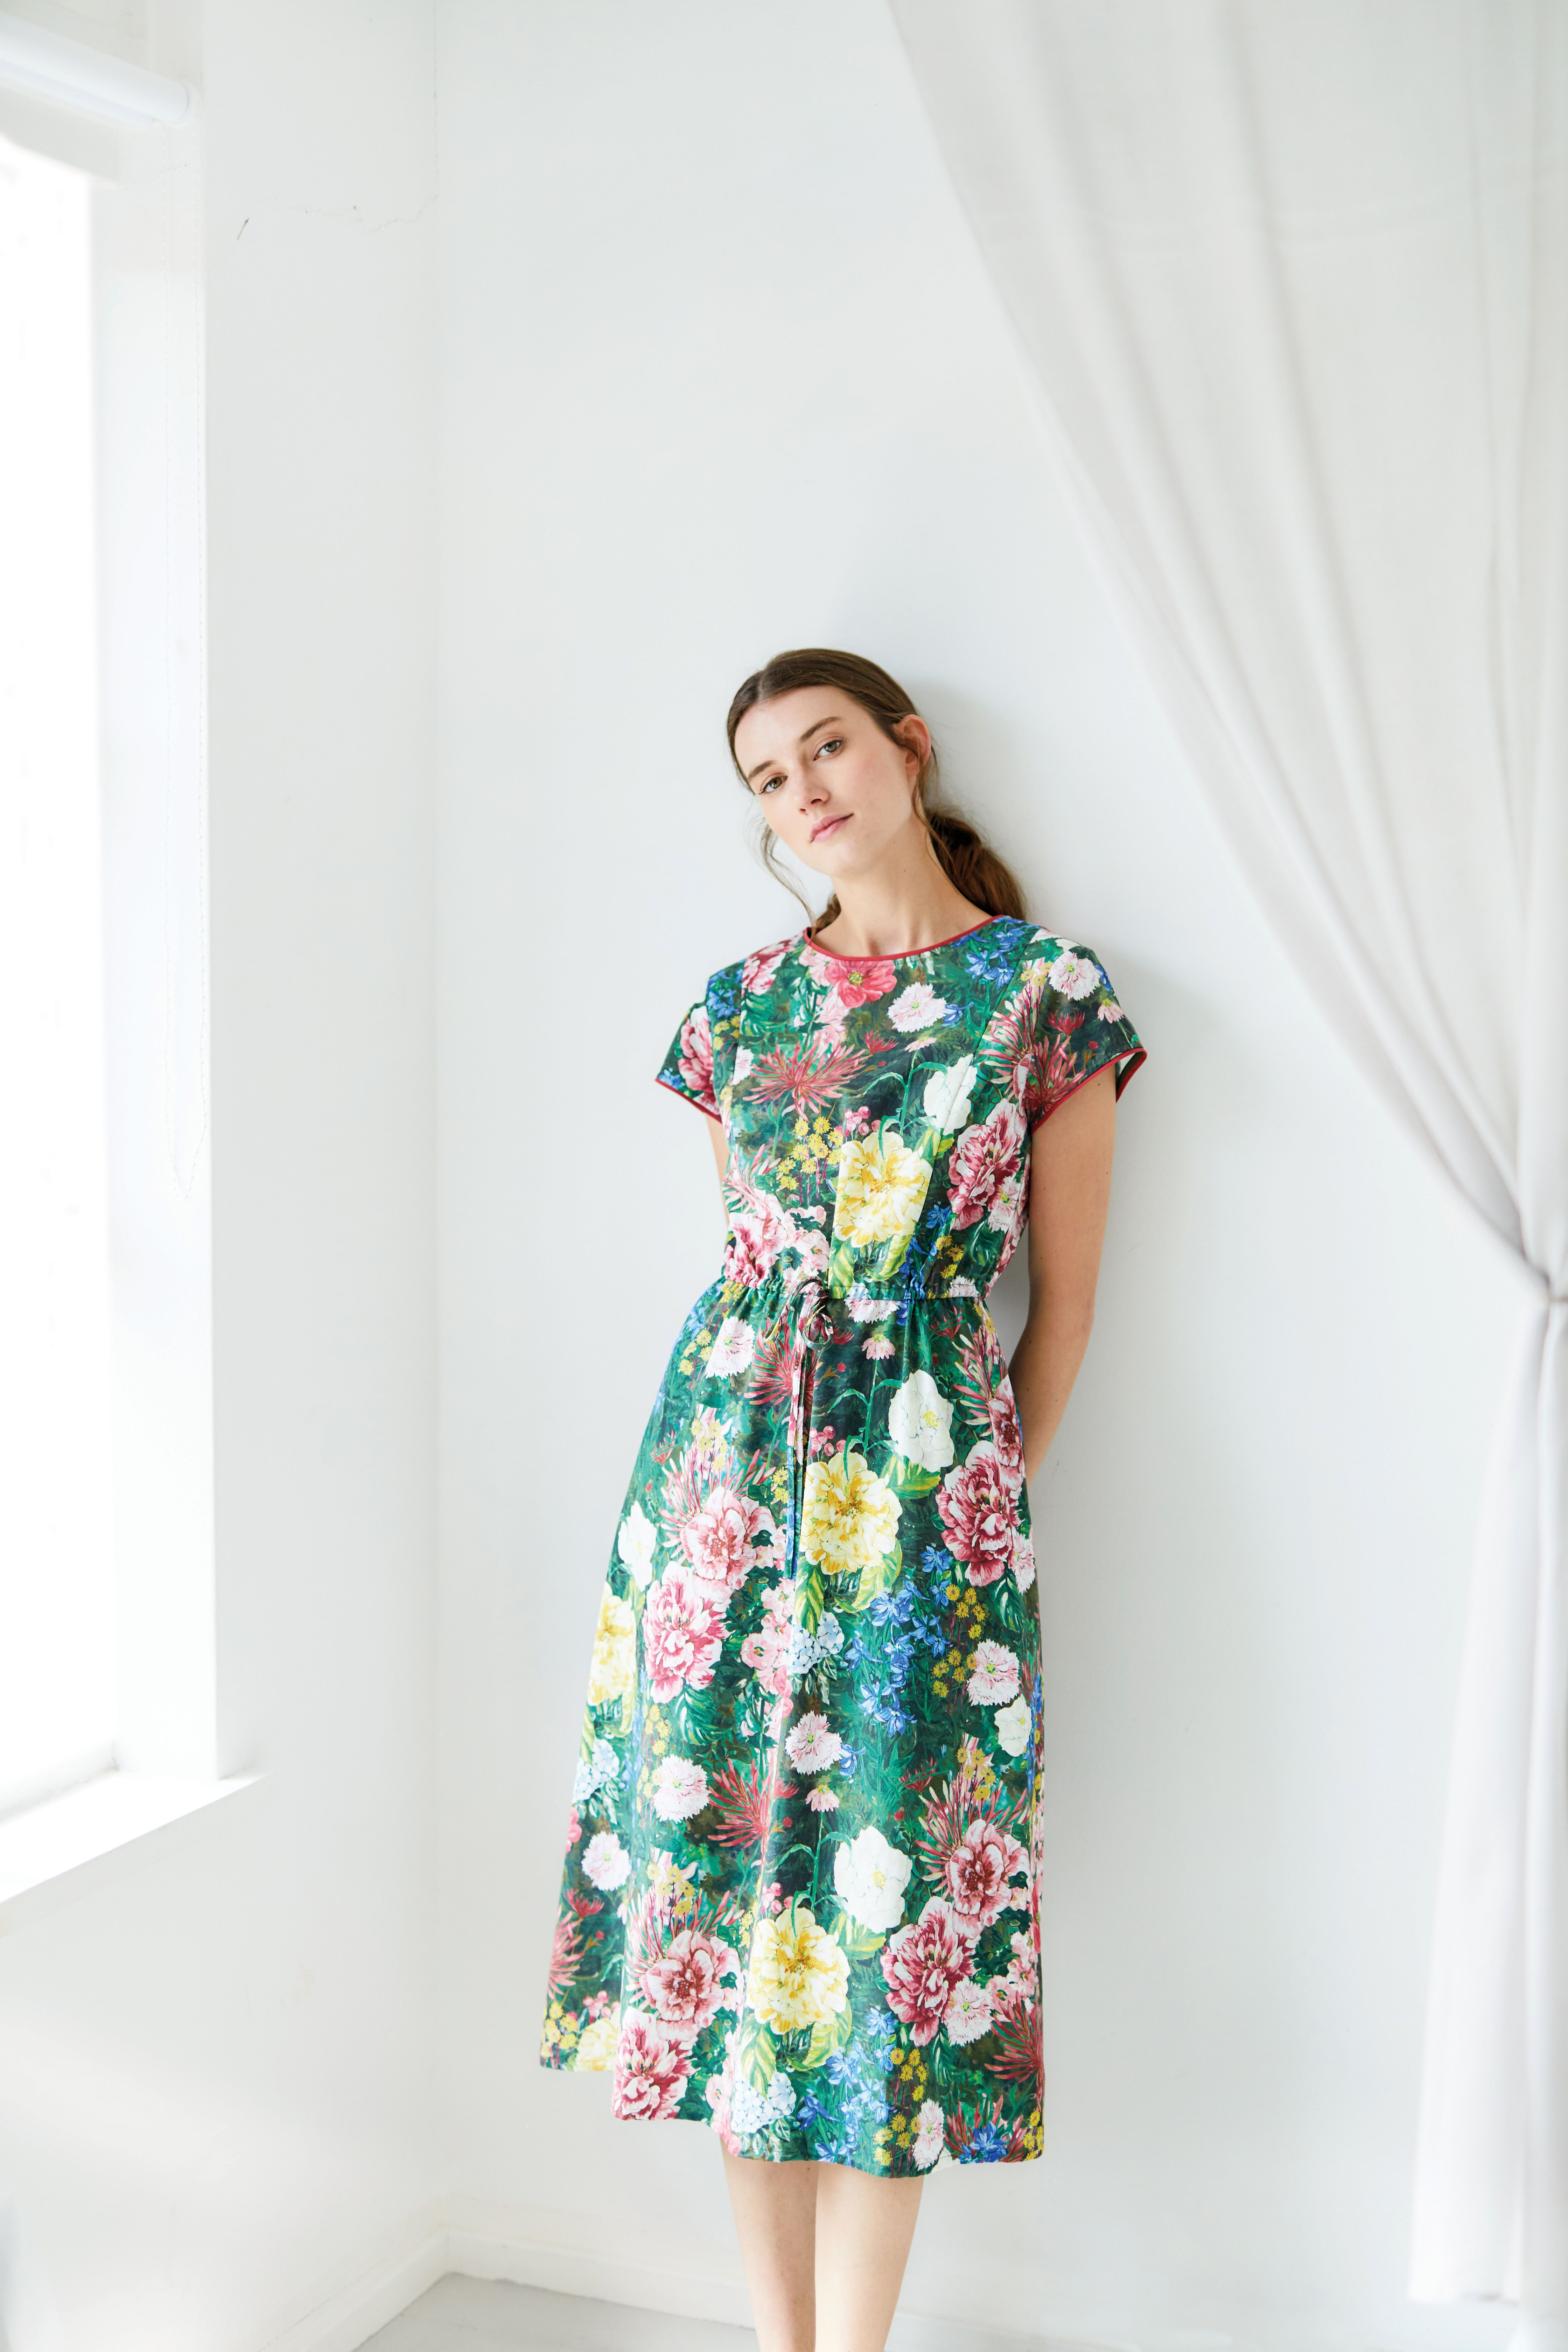 cb44735ae3 This digitally printed floral midi dress is crafted from smooth Tencel and  certified organic cotton, making it cool and breathable.